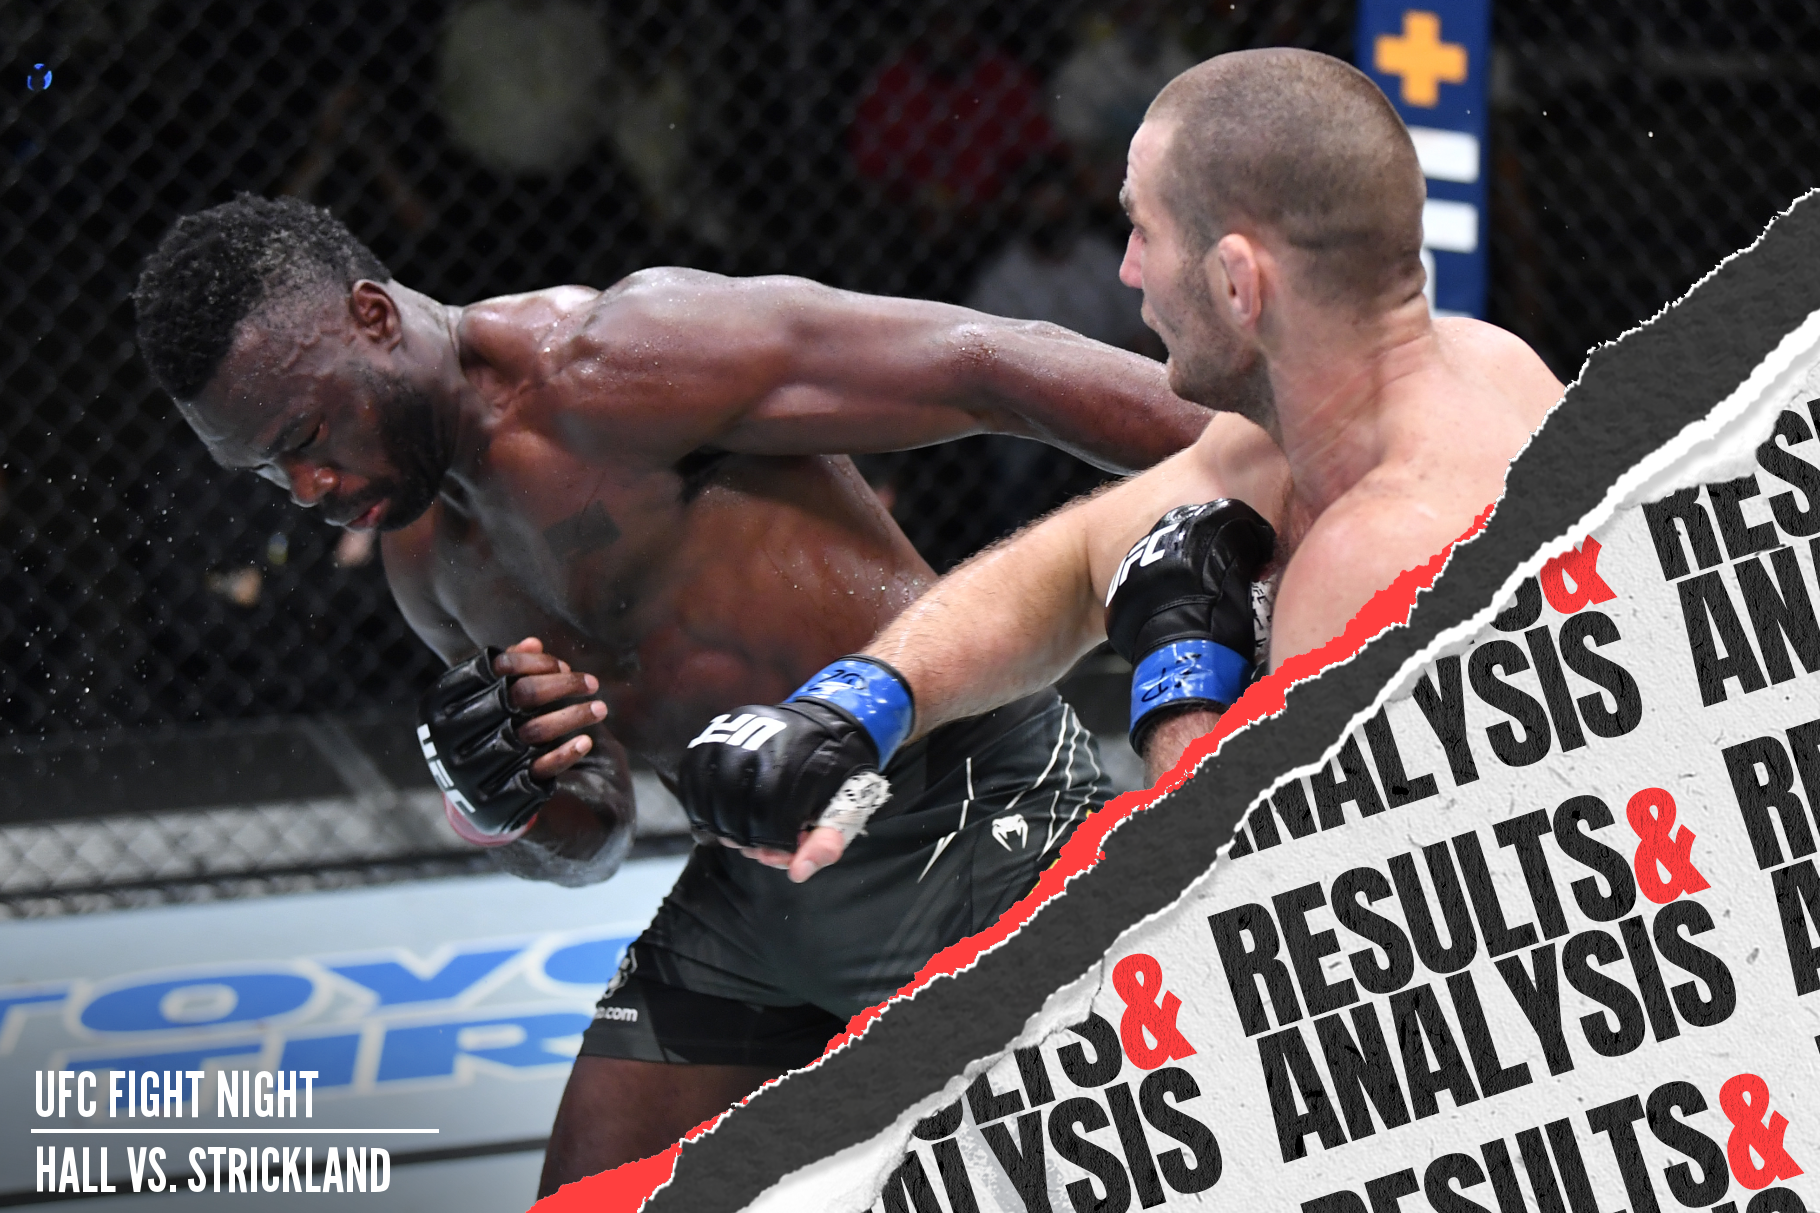 Sean Strickland punches Uriah Hall in the UFC Vegas 33 main event.